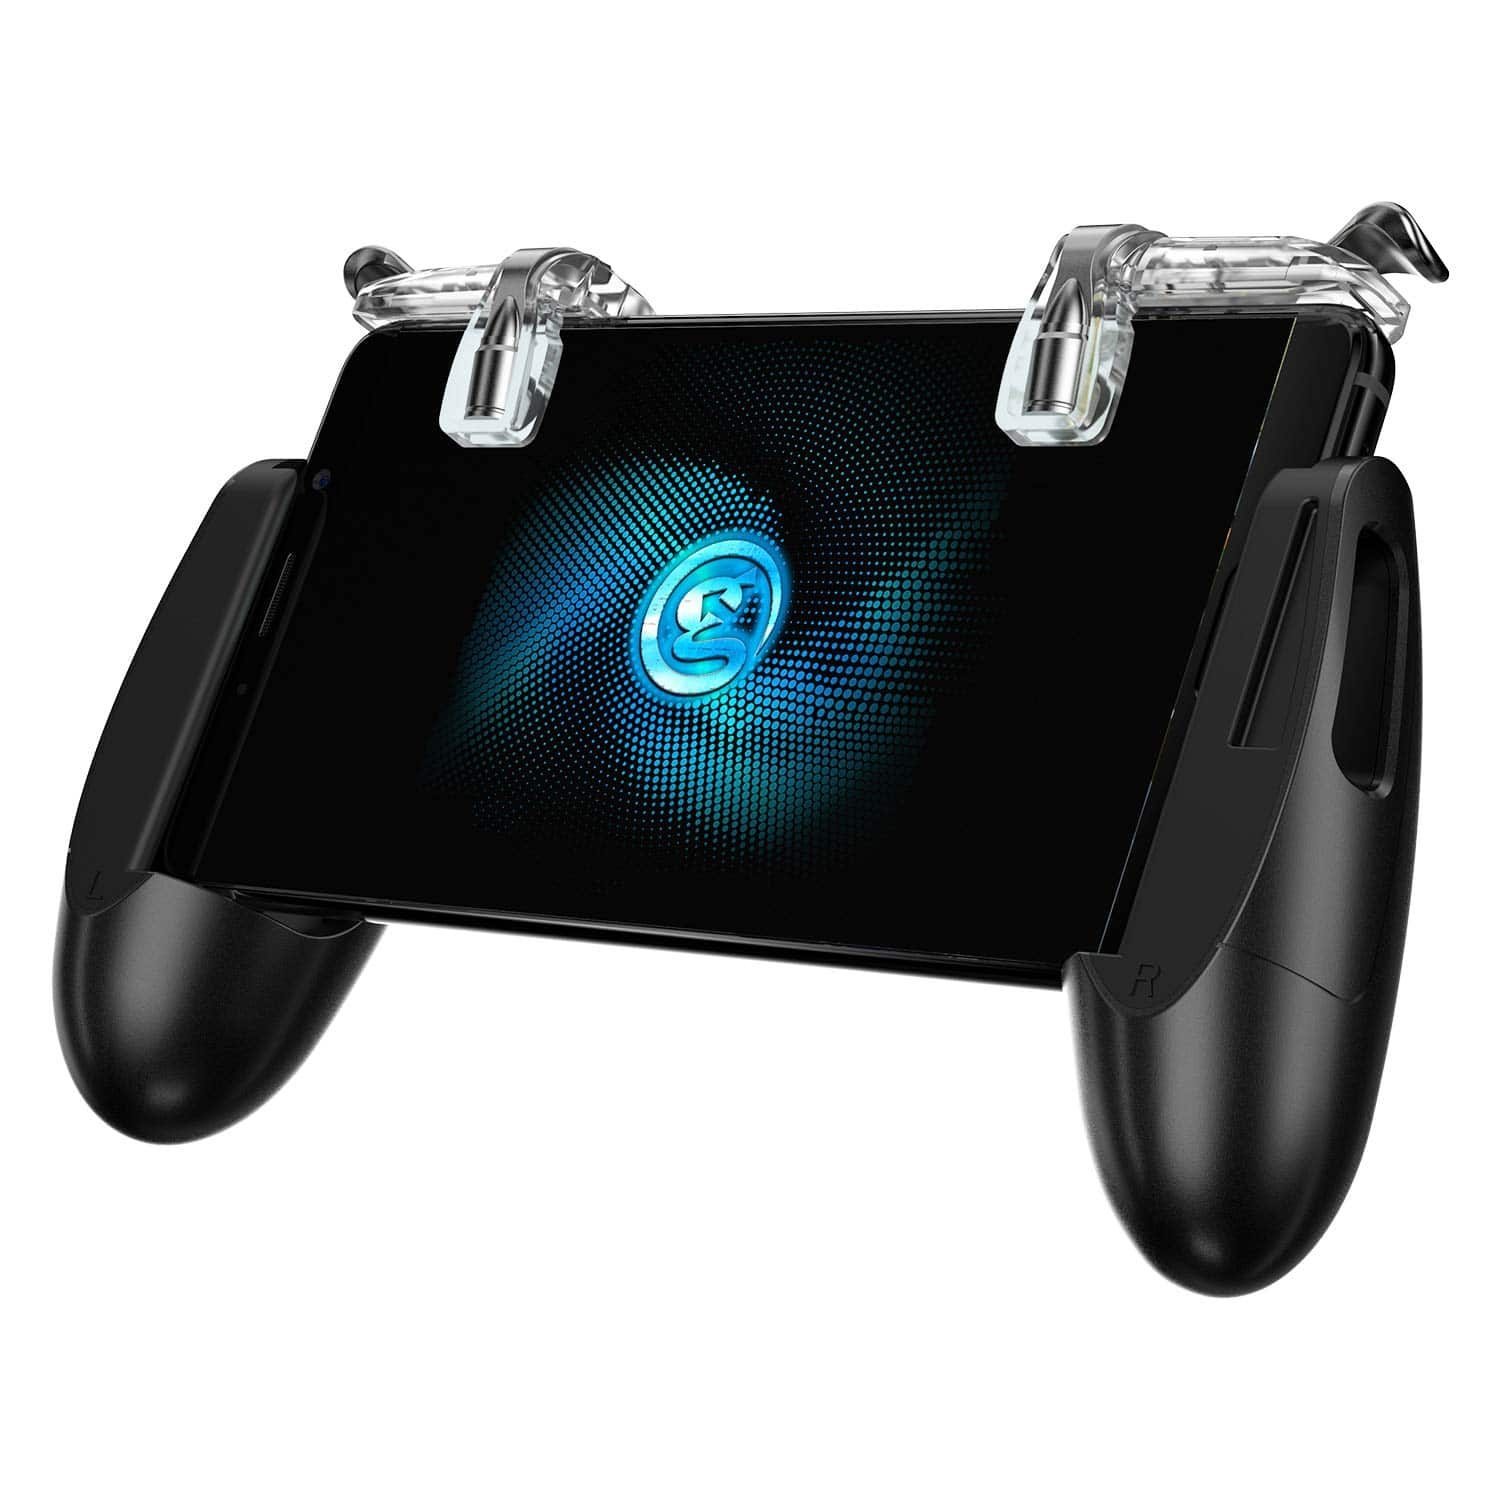 Image 5 : Call of Duty Mobile : 5 manettes tactiles Android pour améliorer son skill